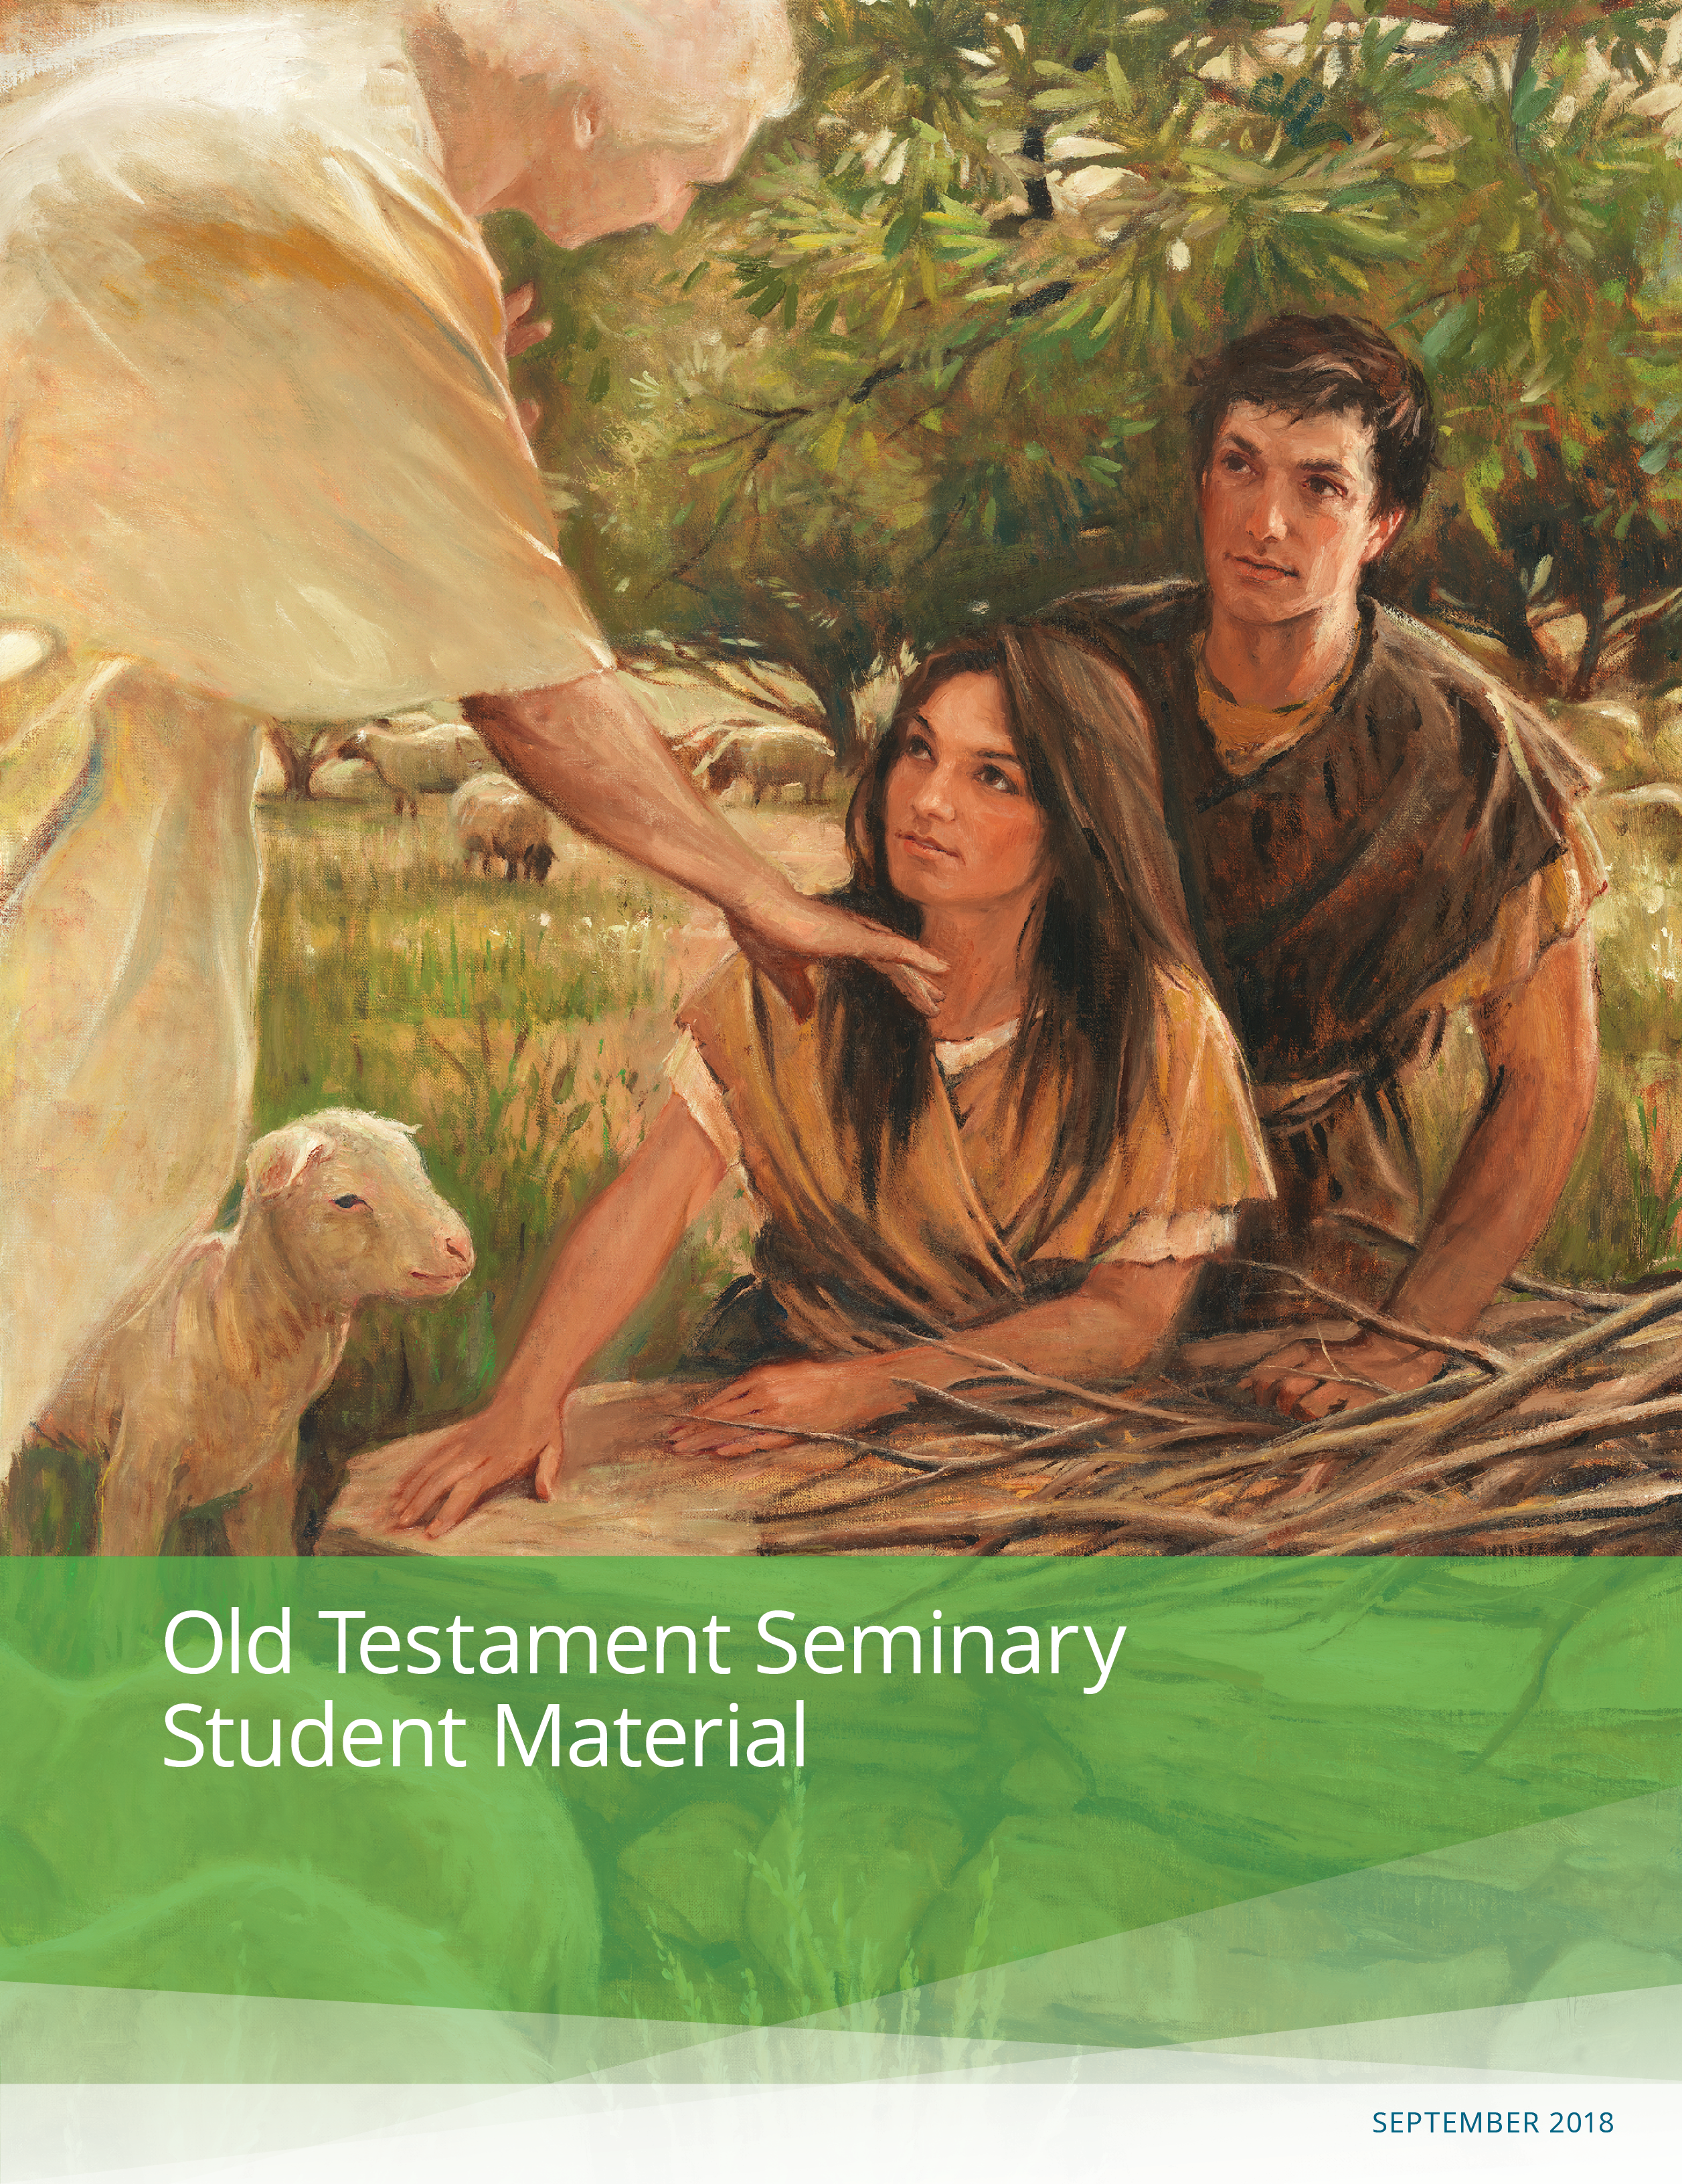 Old Testament Seminary Student Material